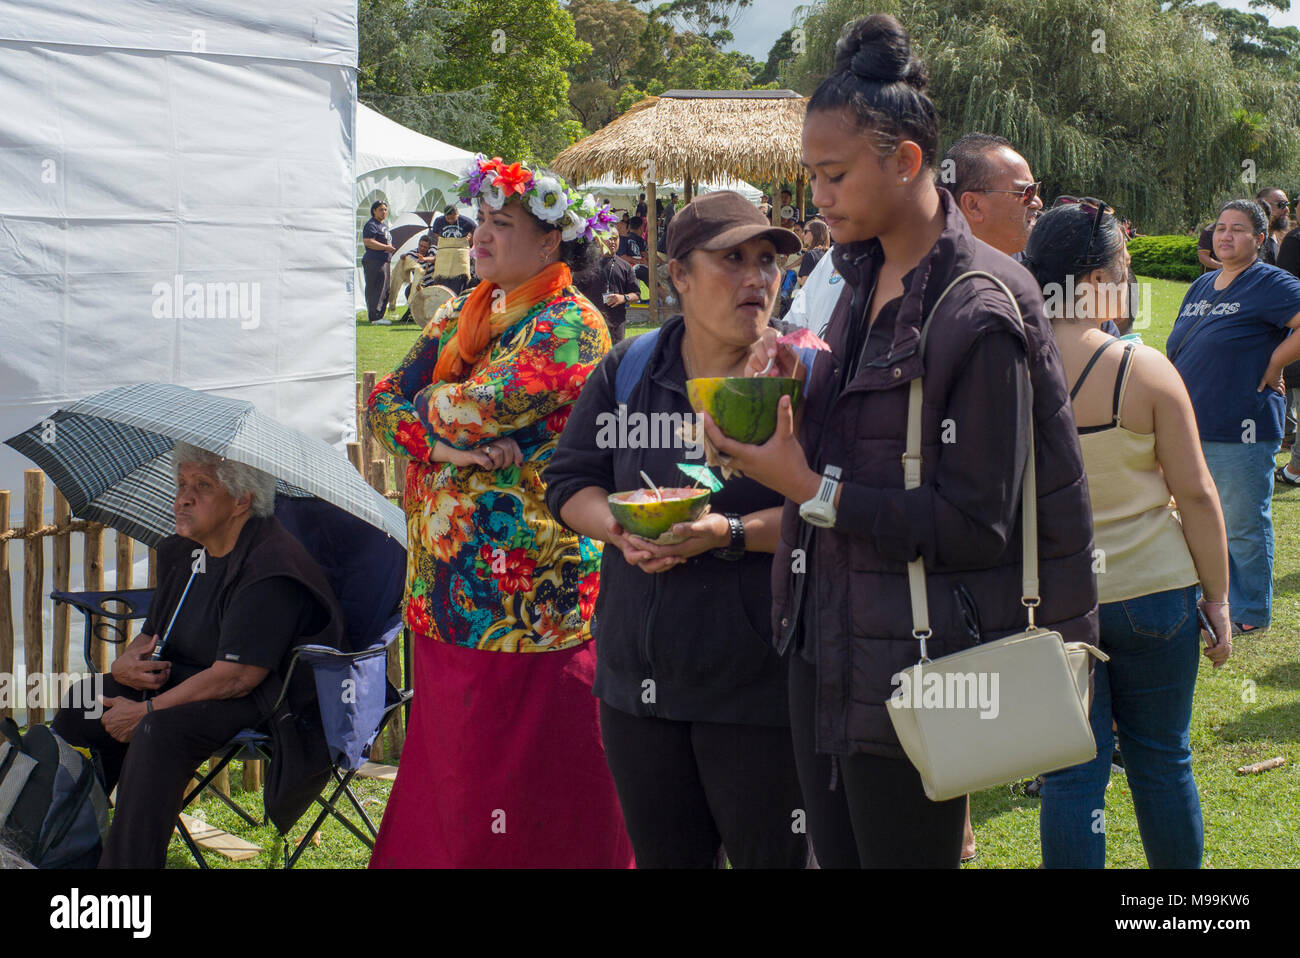 A group of people at Pasifica Festiva; Auckland. Some women are eating from half melons used as plates. - Stock Image